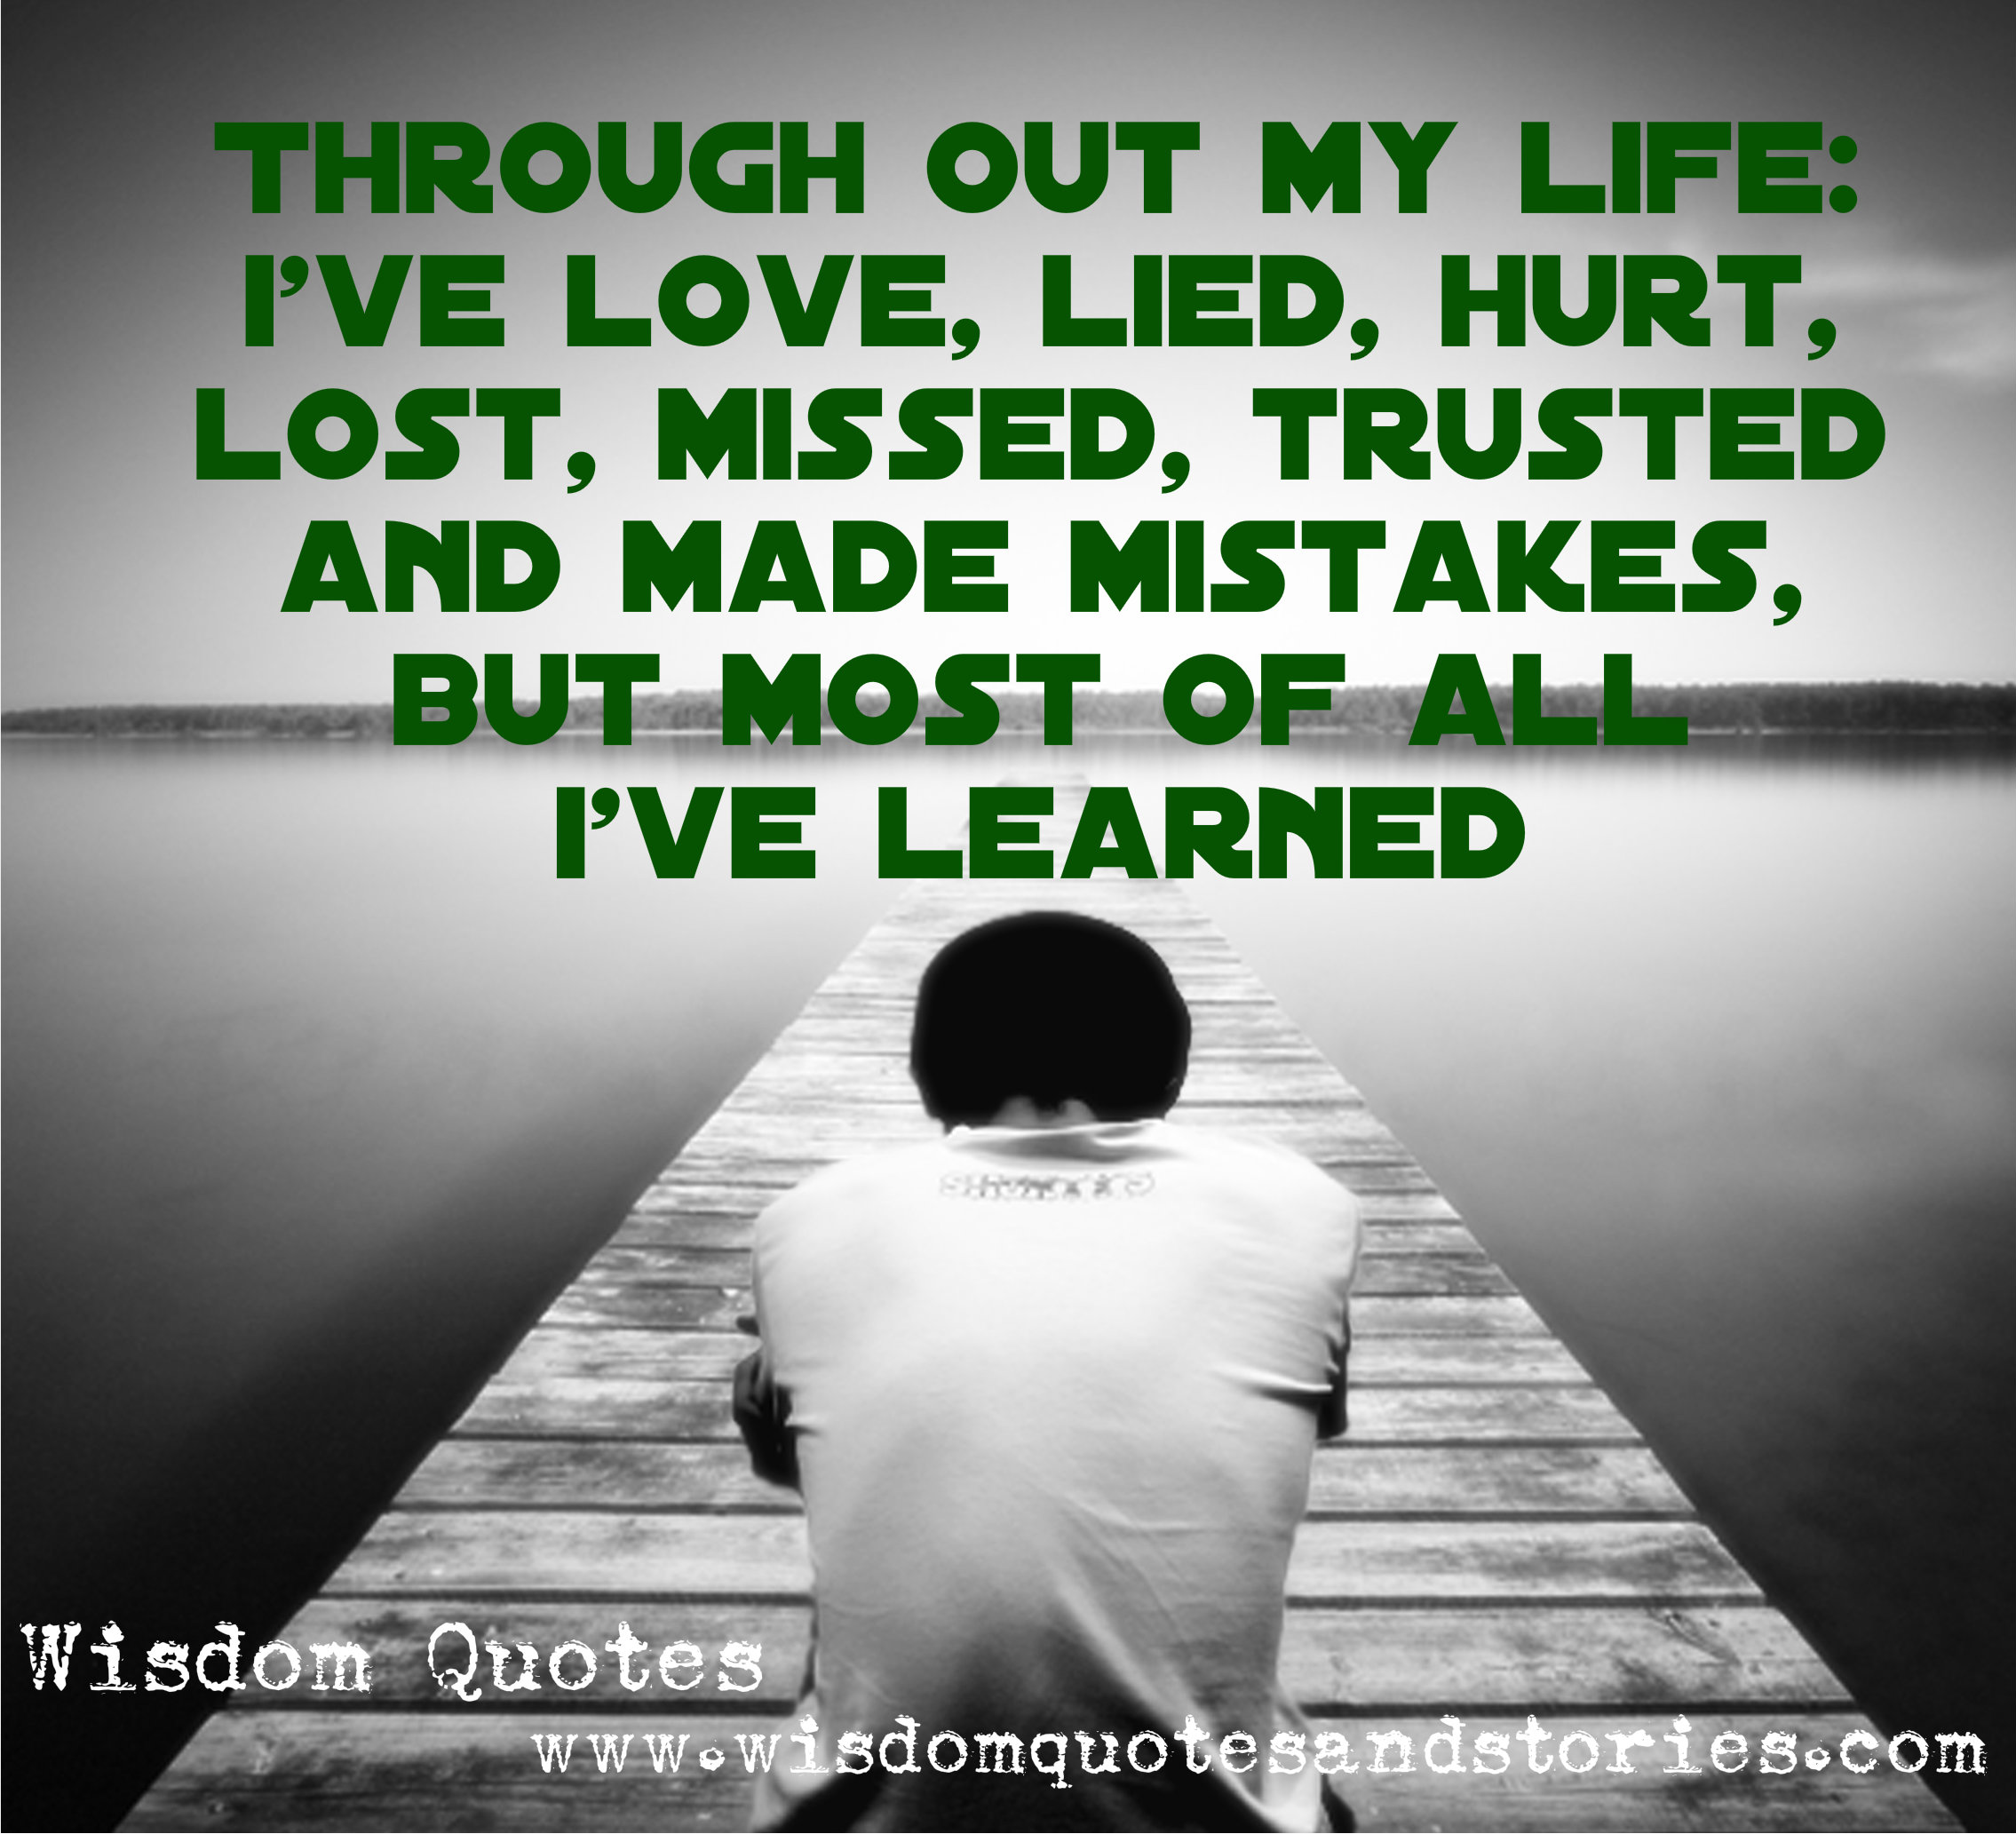 Throughout my life , I have loved ,lied , hurt ,lost , missed , trusted and made mistakes but I have learnt